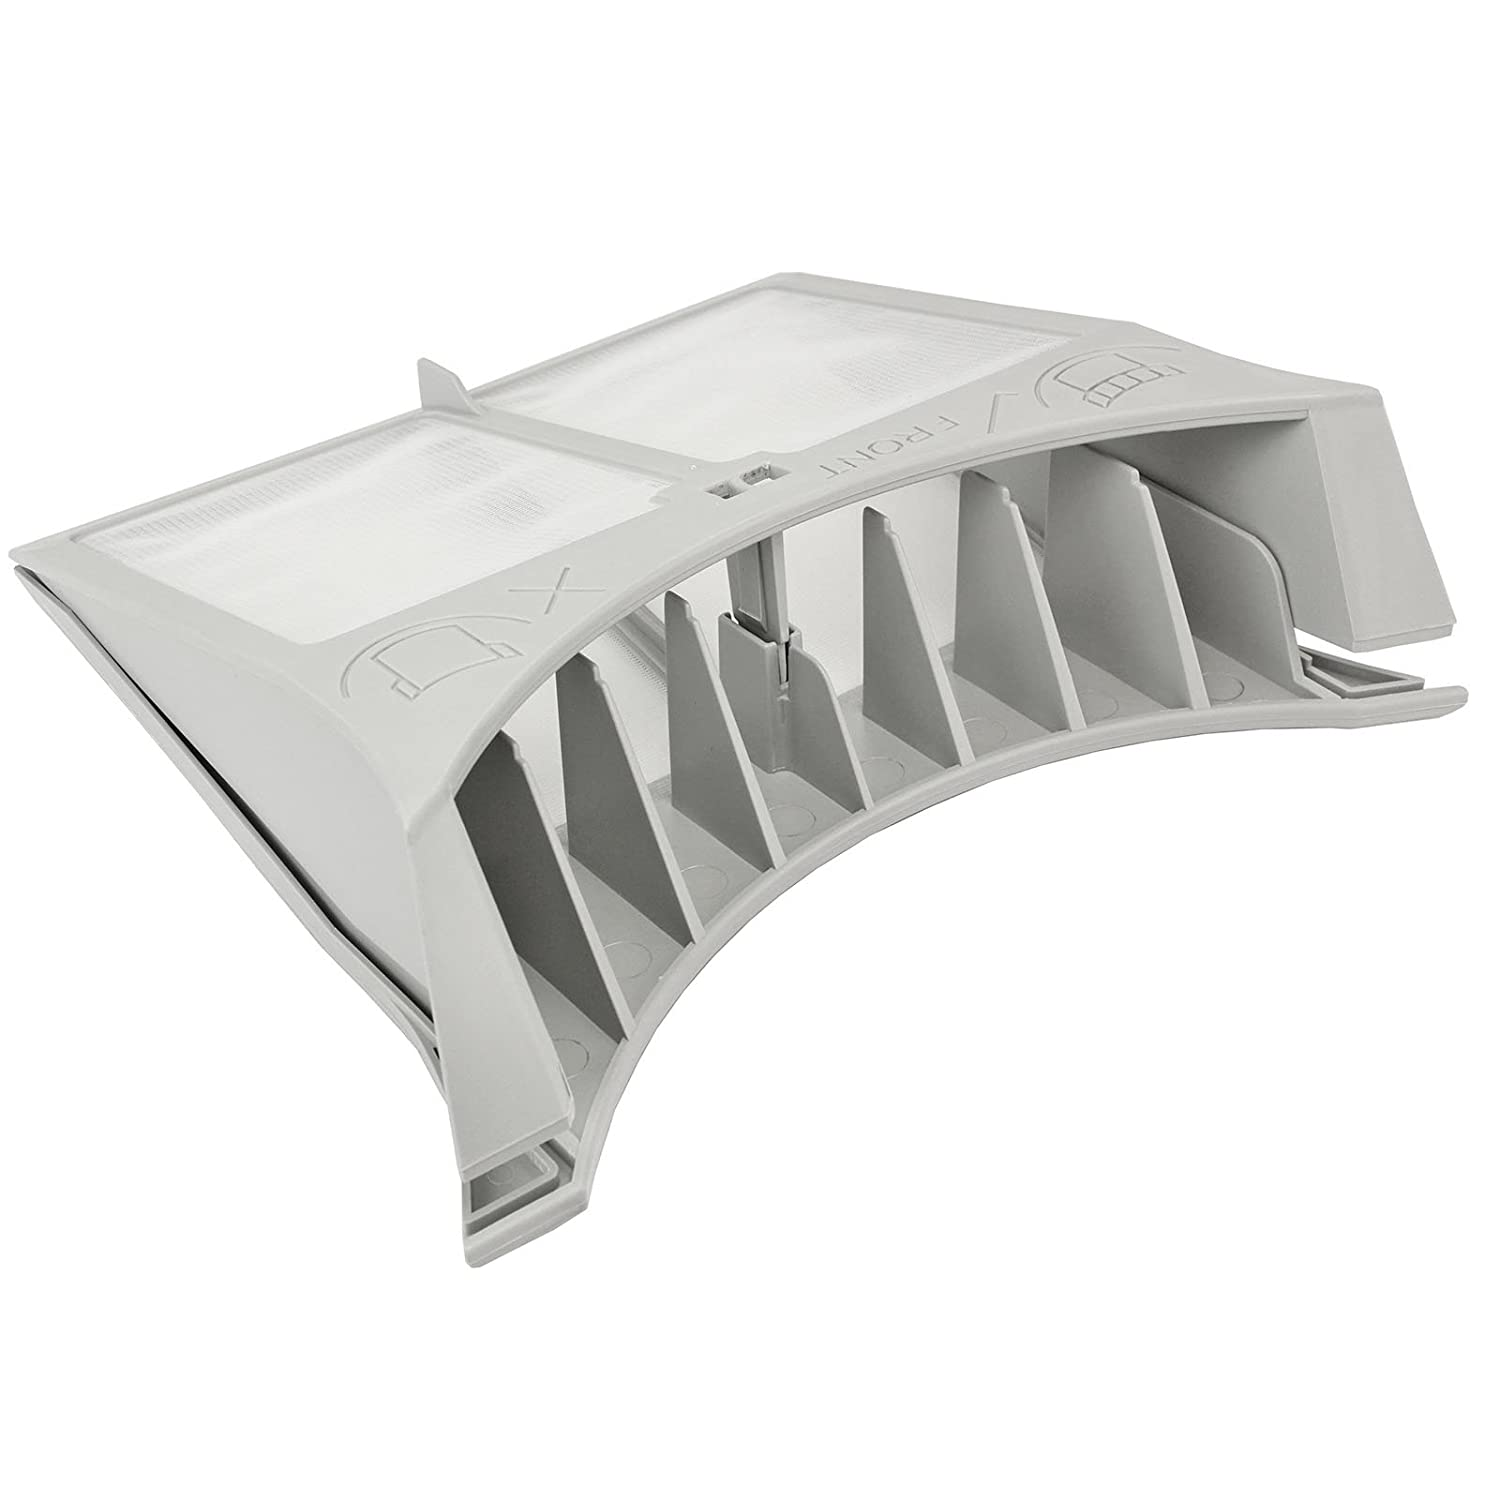 Spares2go Hinged Lint Screen / Fluff Filter for Creda Tumble Dryers (Grey)